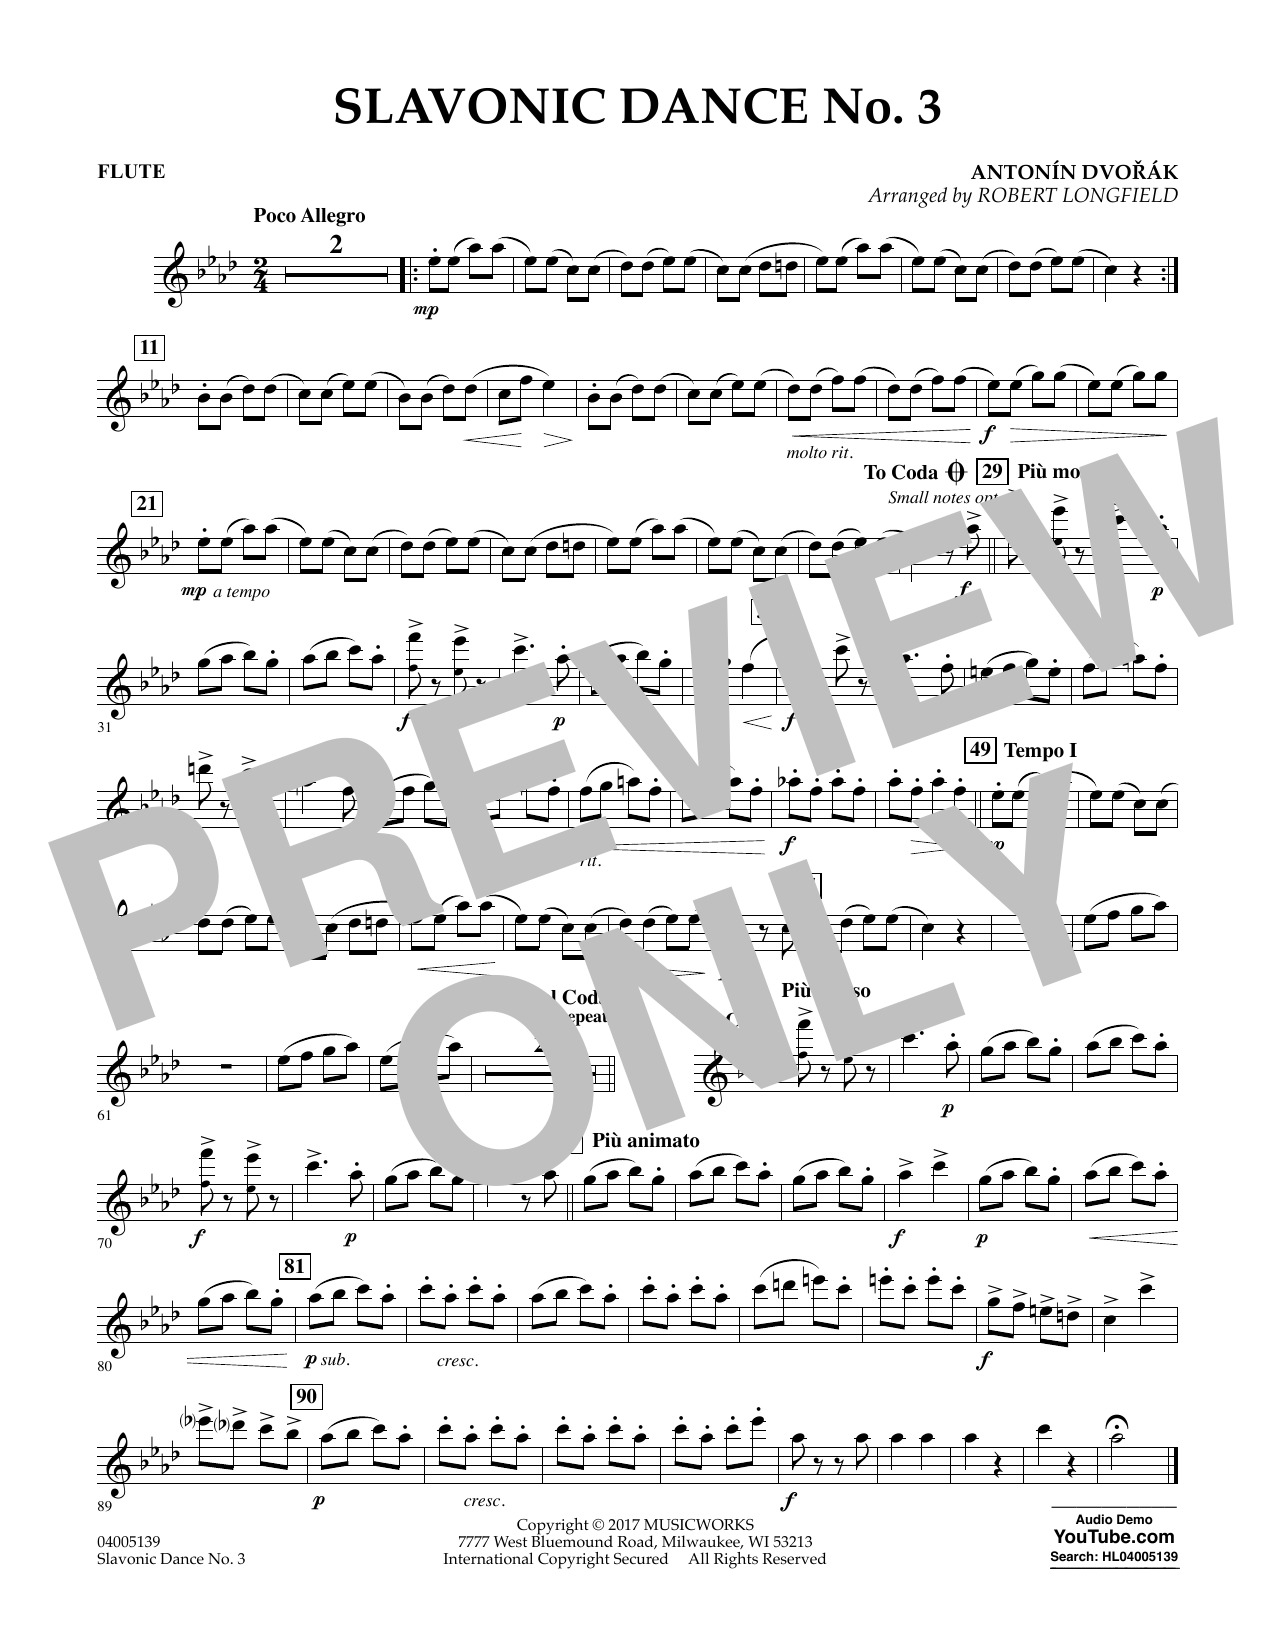 Robert Longfield Slavonic Dance No. 3 - Flute sheet music notes and chords. Download Printable PDF.